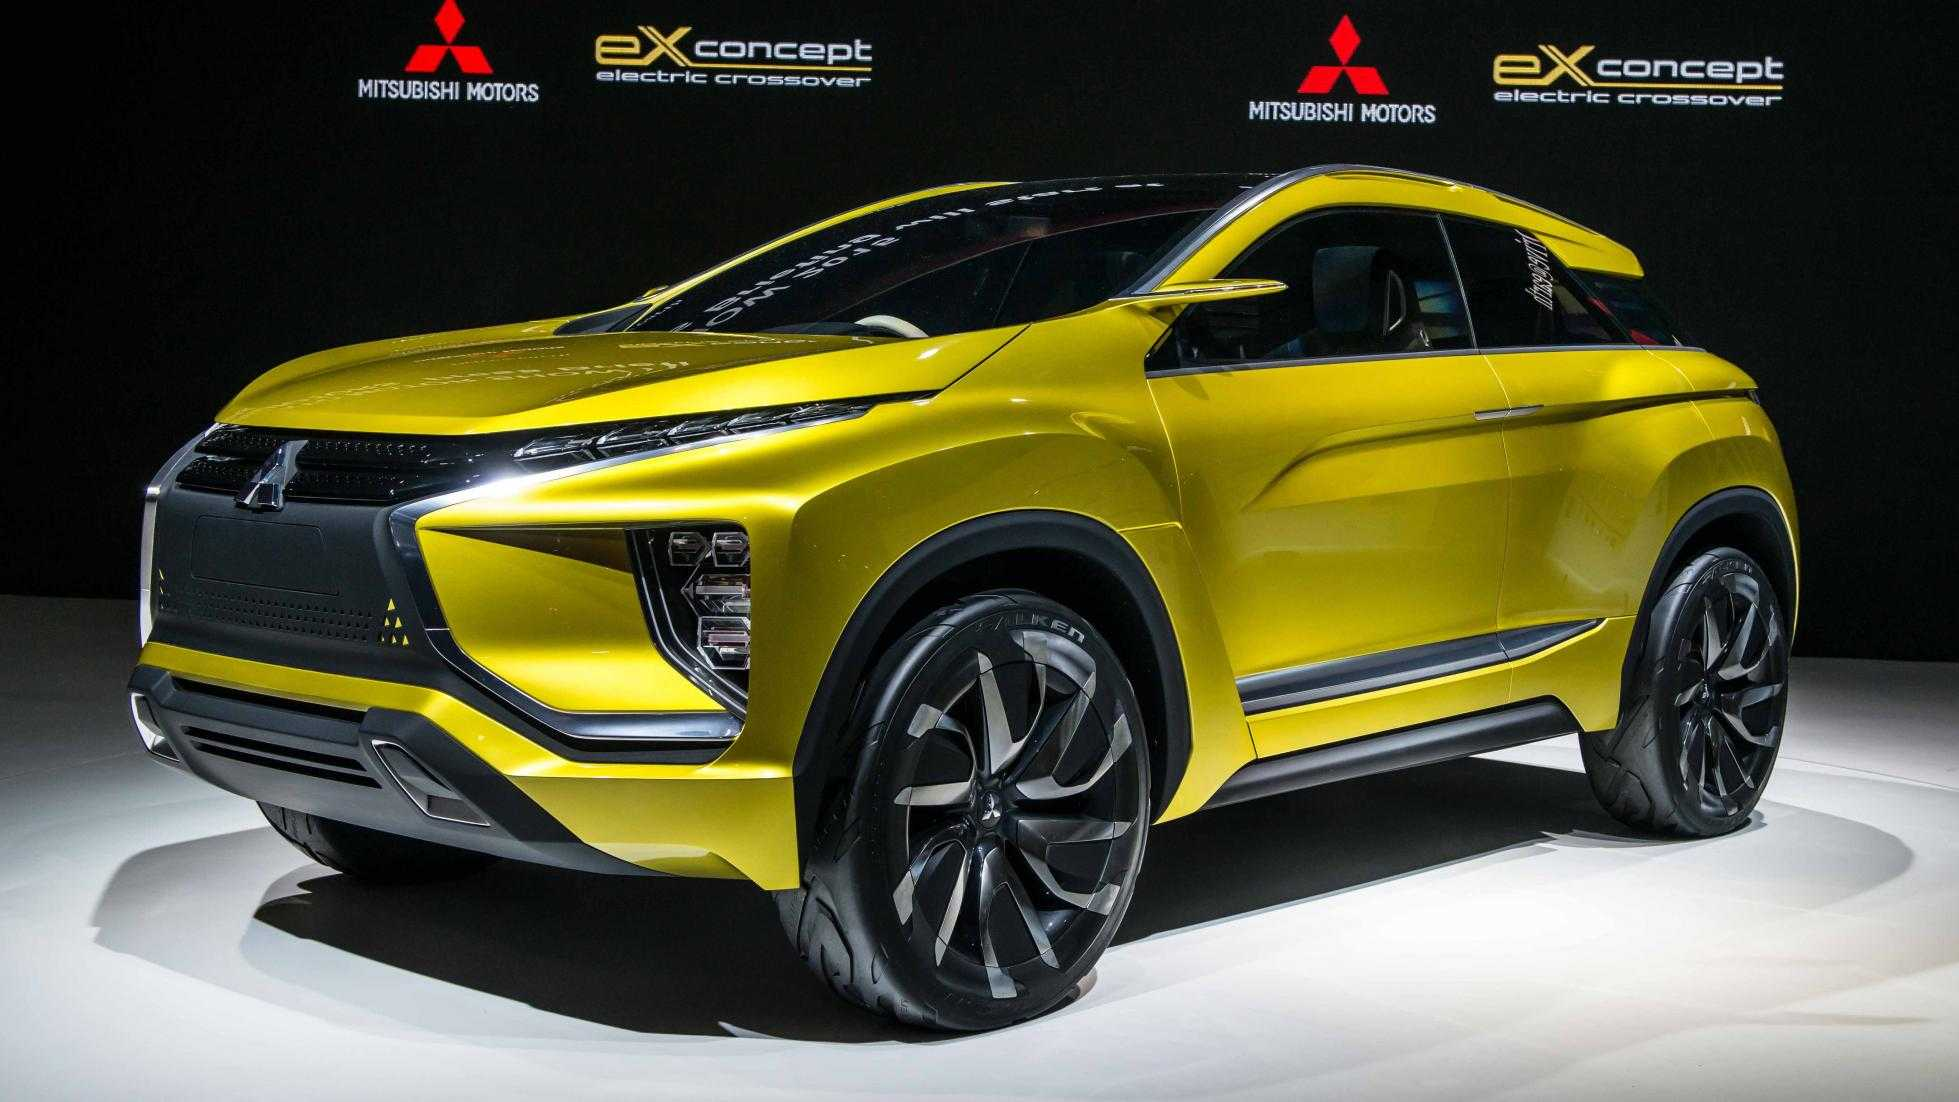 Mitsubishi is Going to Launch a New SUV Every Year